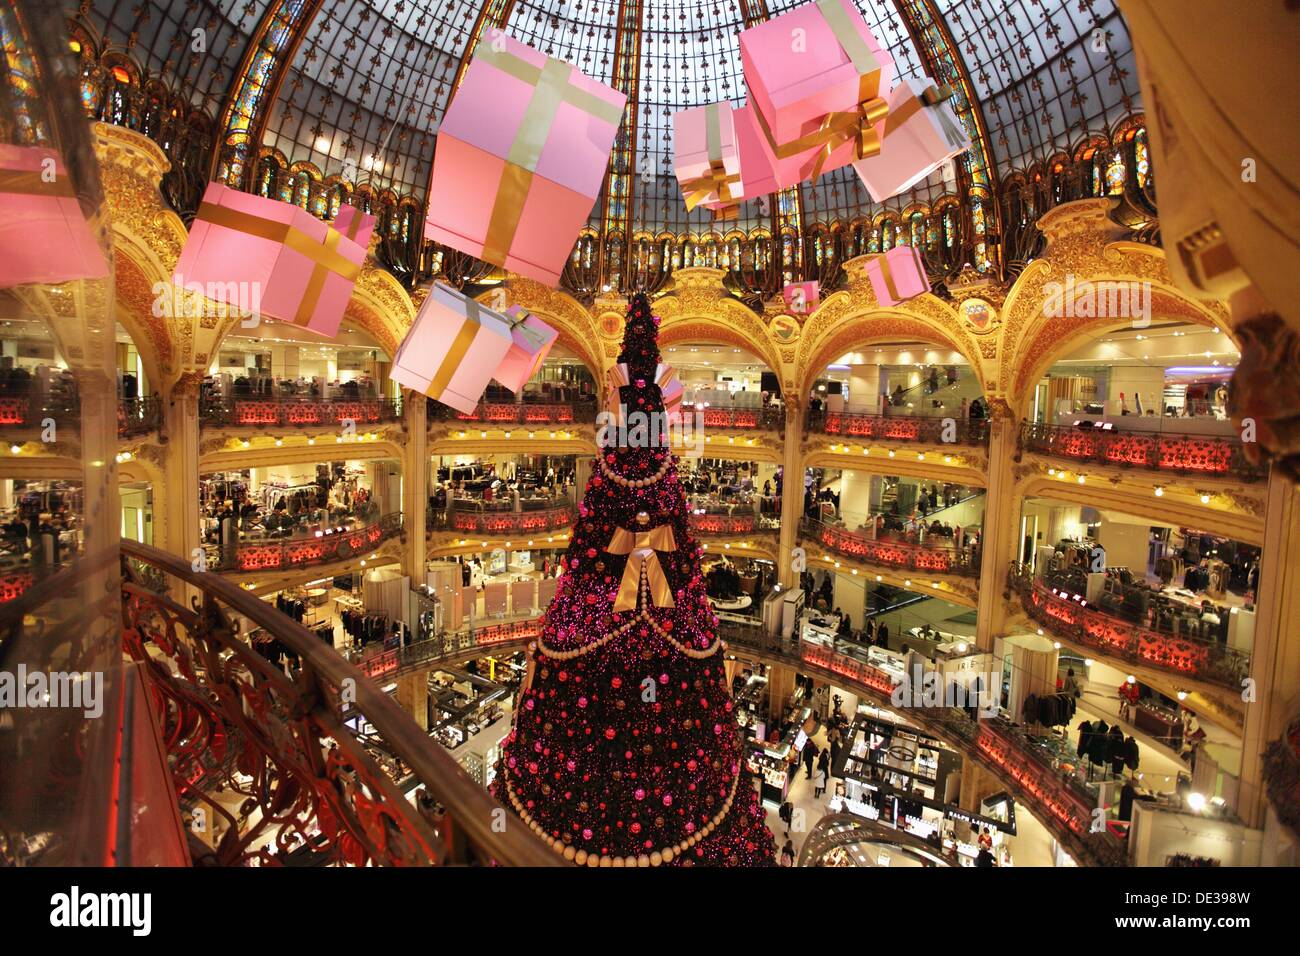 Christmas decorations in galeries lafayette department for Shop xmas decorations